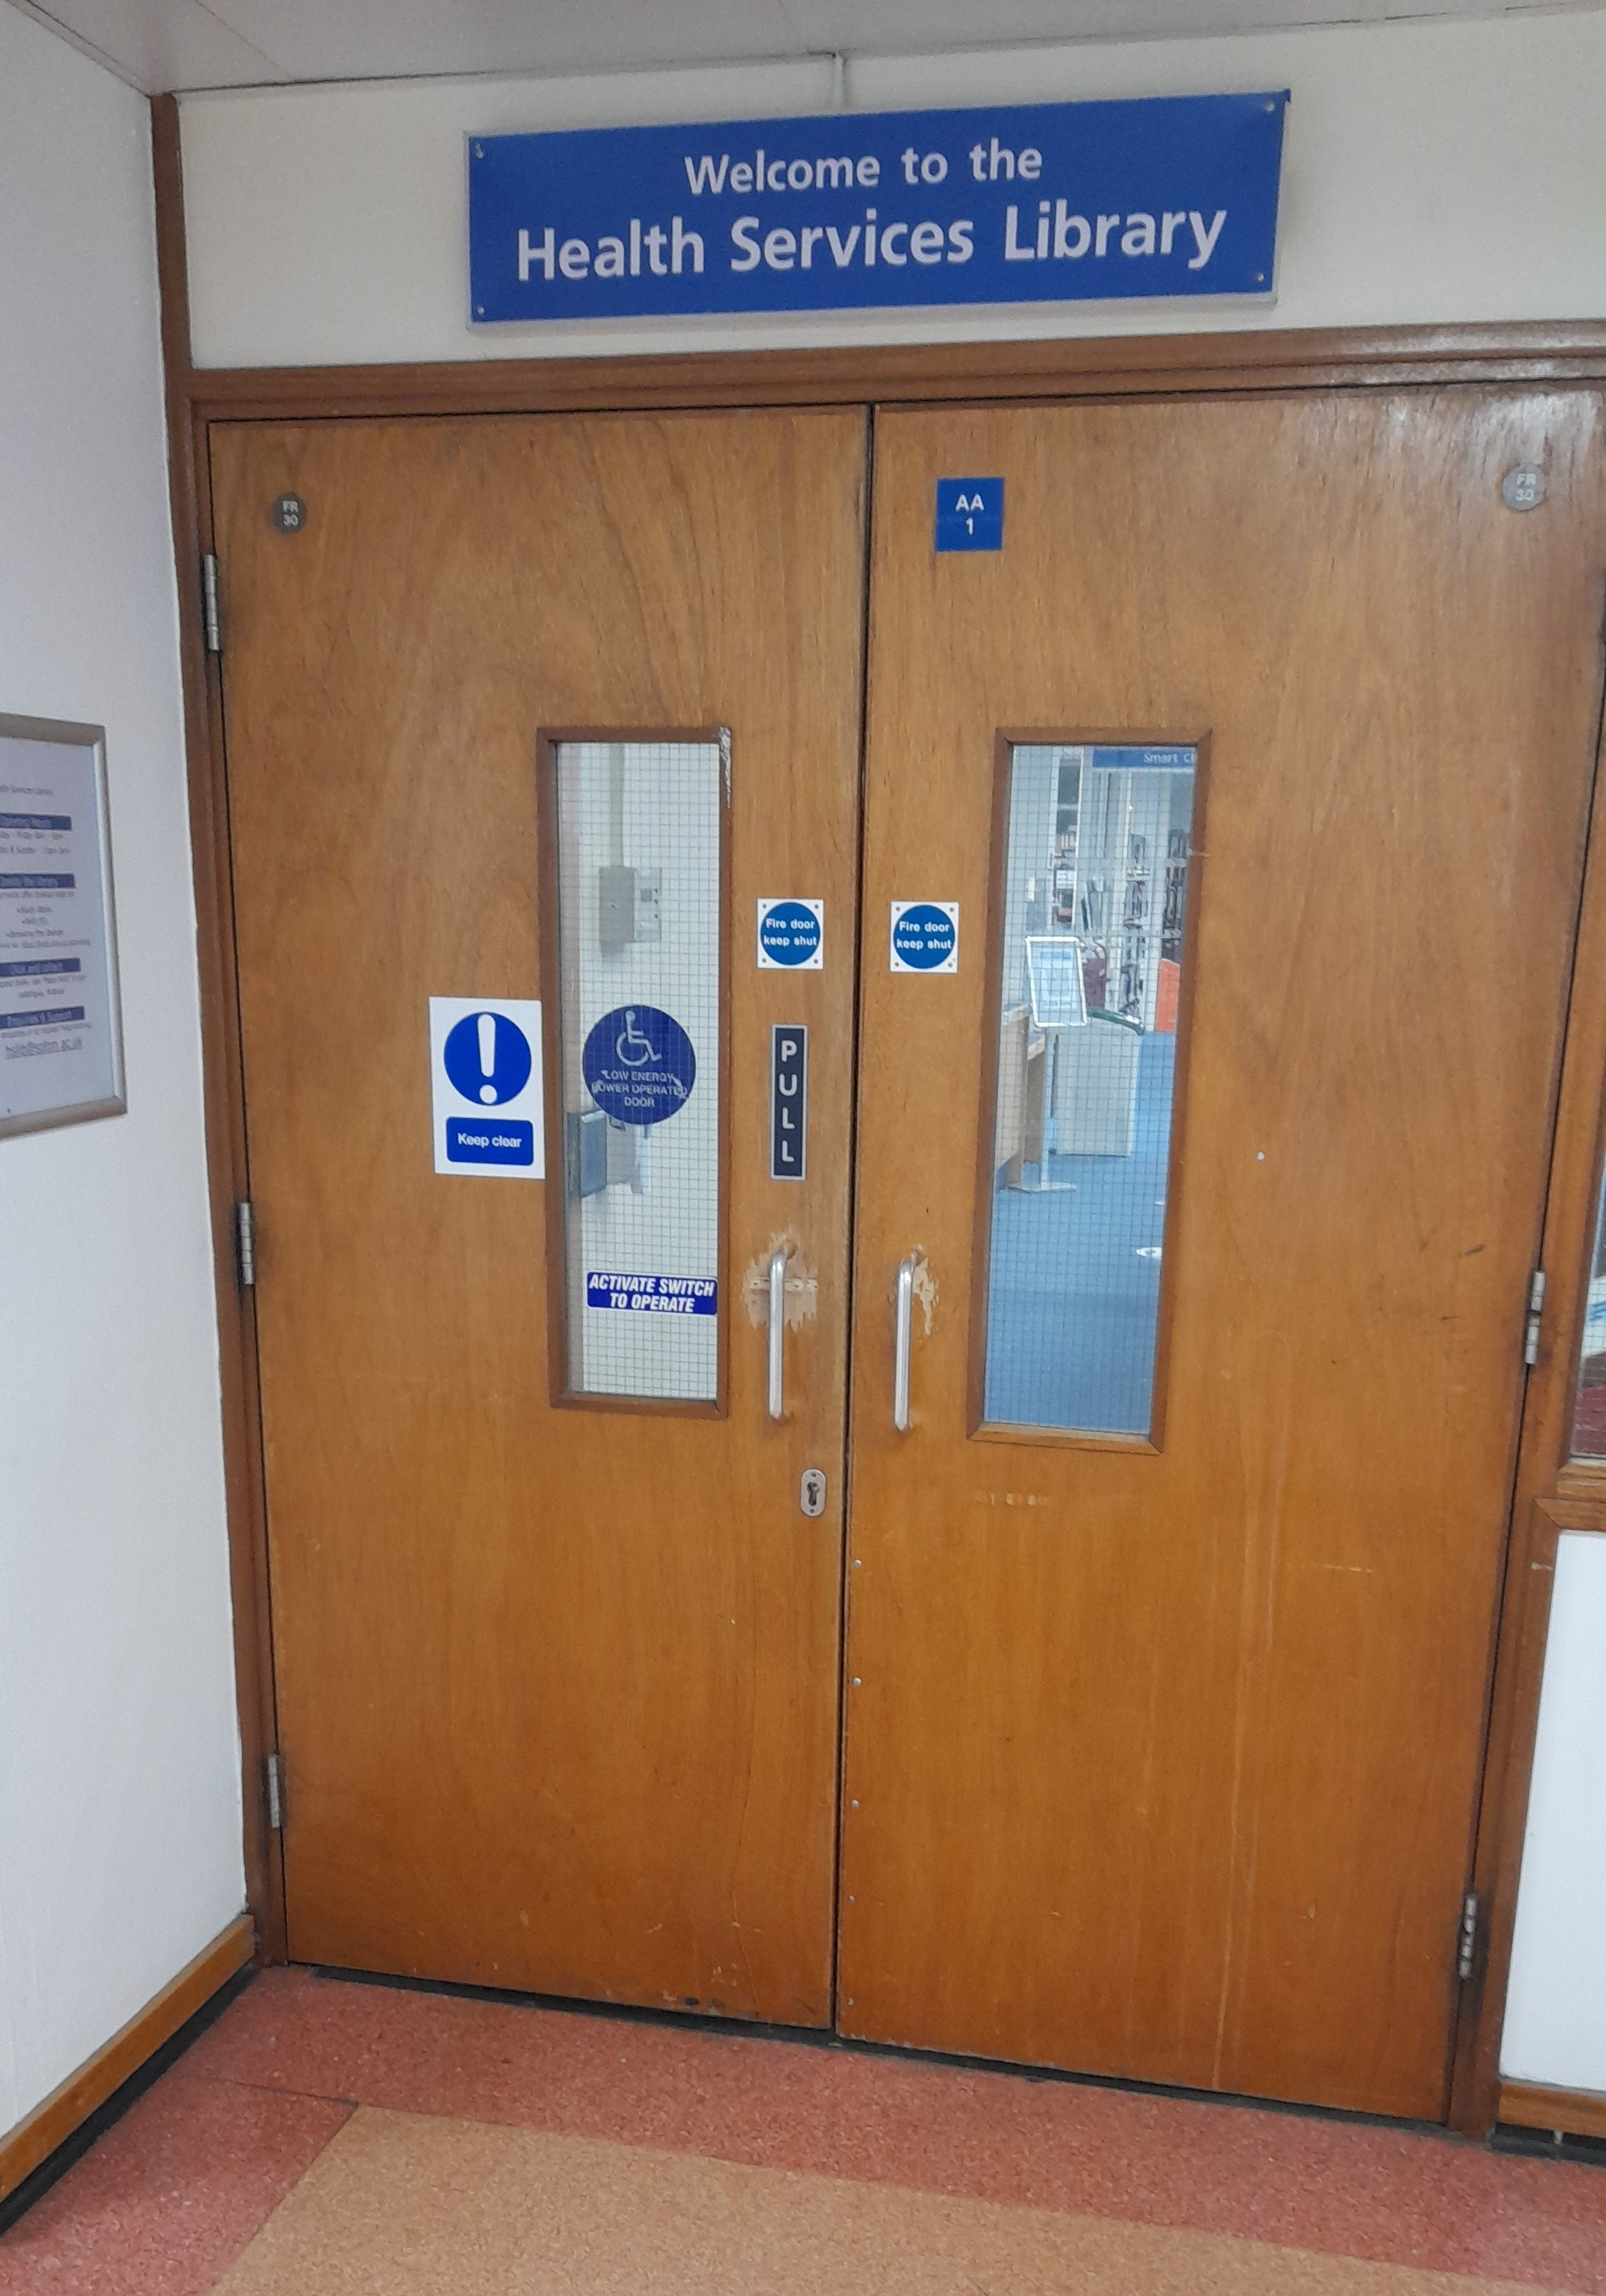 The double doors leading to the Health Services Library.